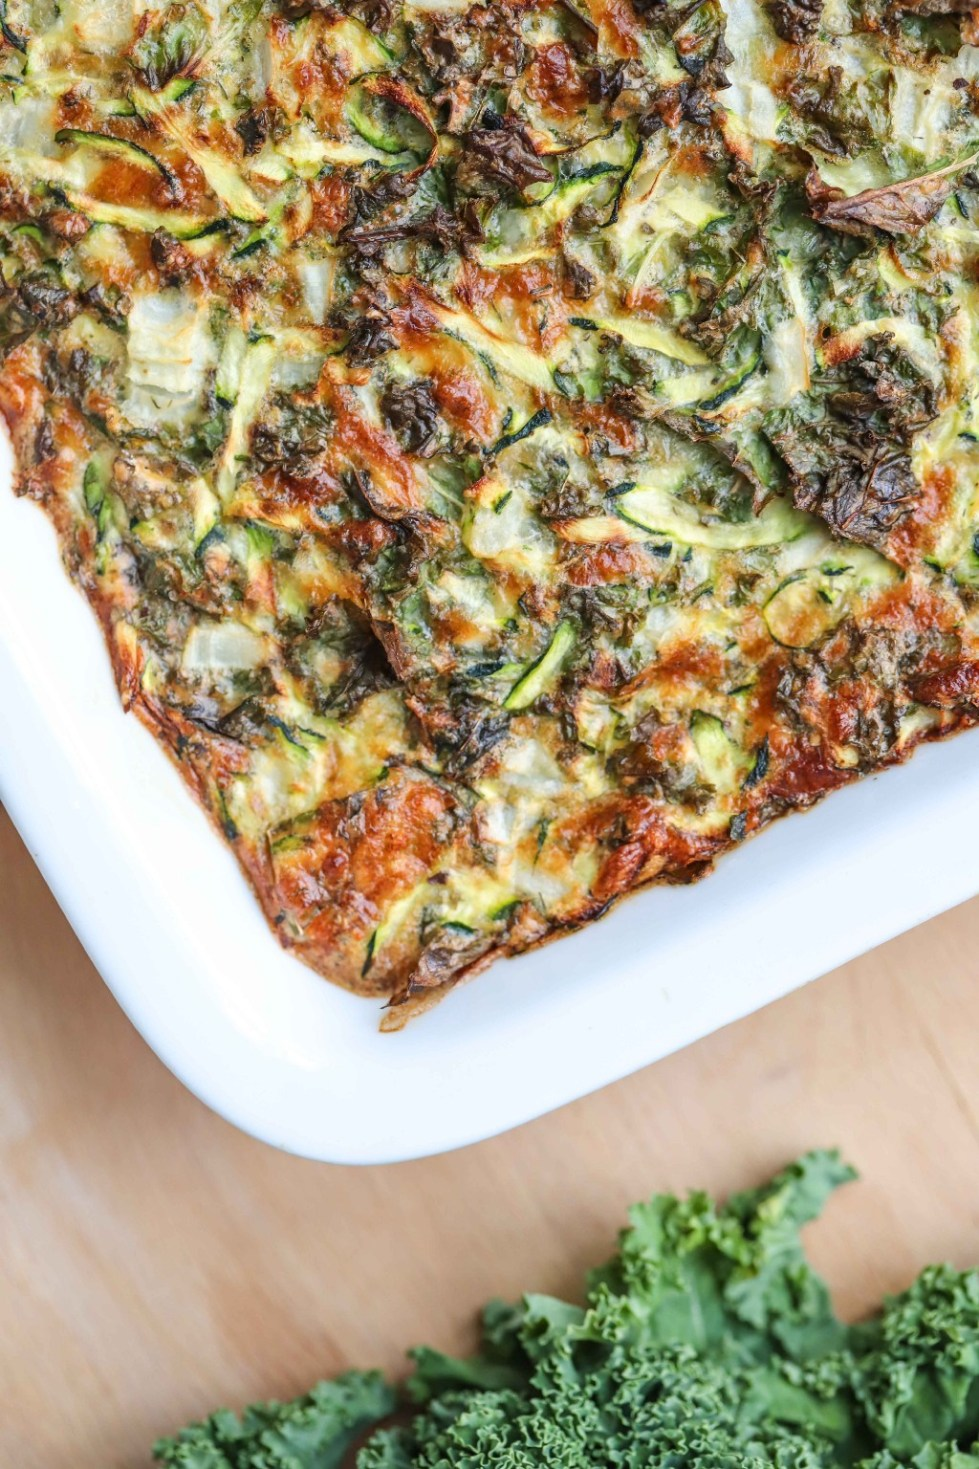 Zucchini and kale breakfast bake in a white baking dish on top of a wooden cutting board